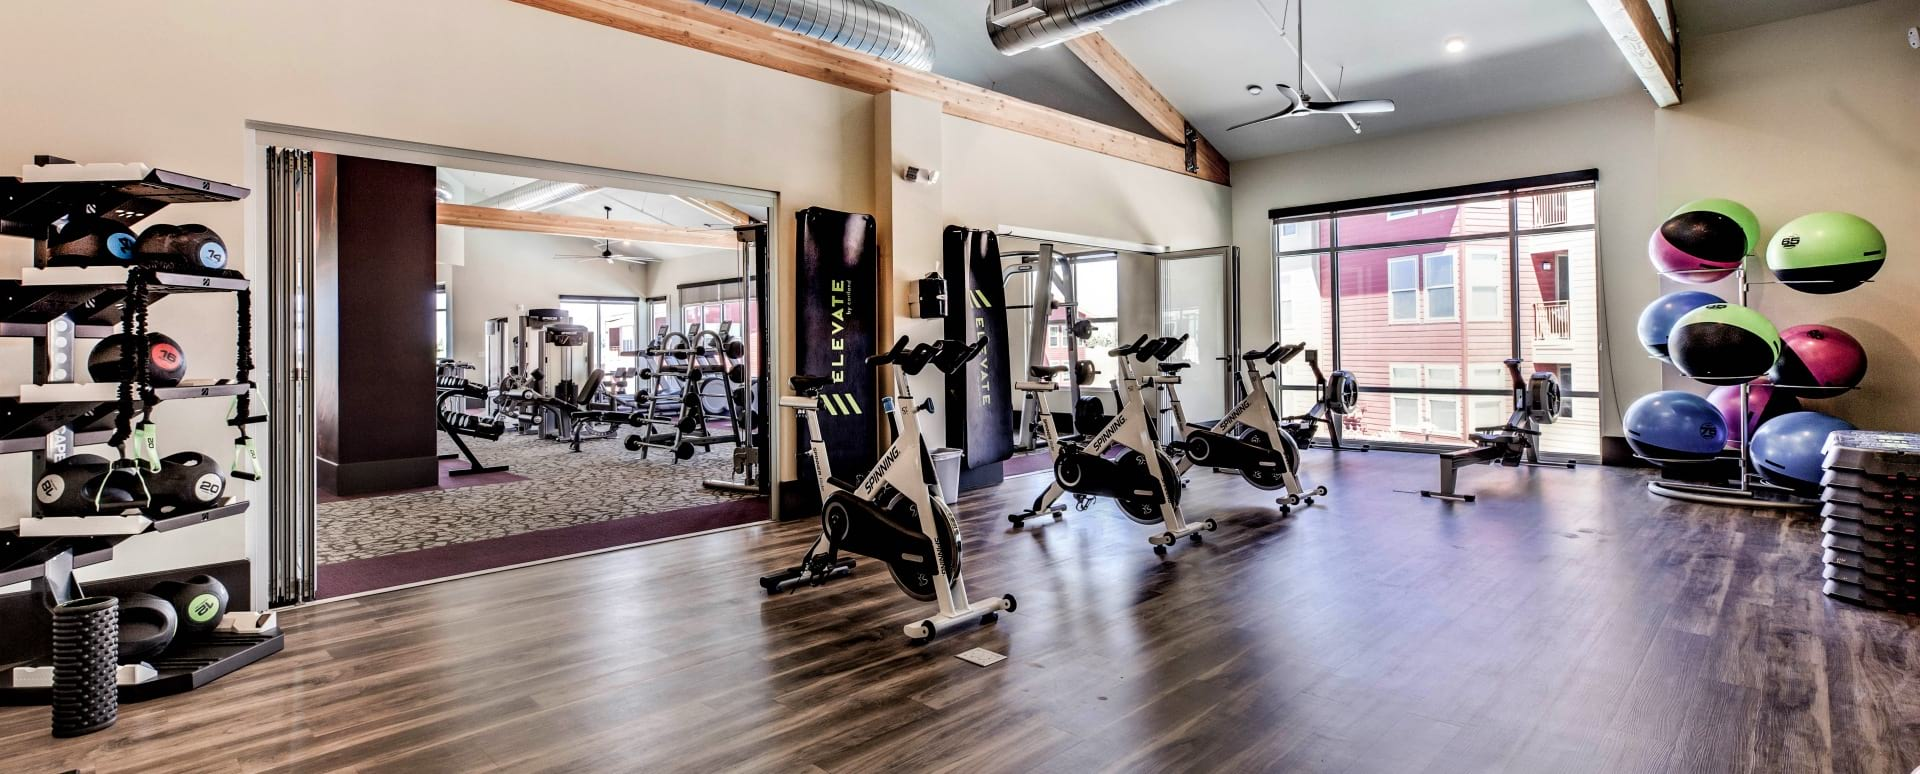 Our Colorado Springs apartment gym with spin studio